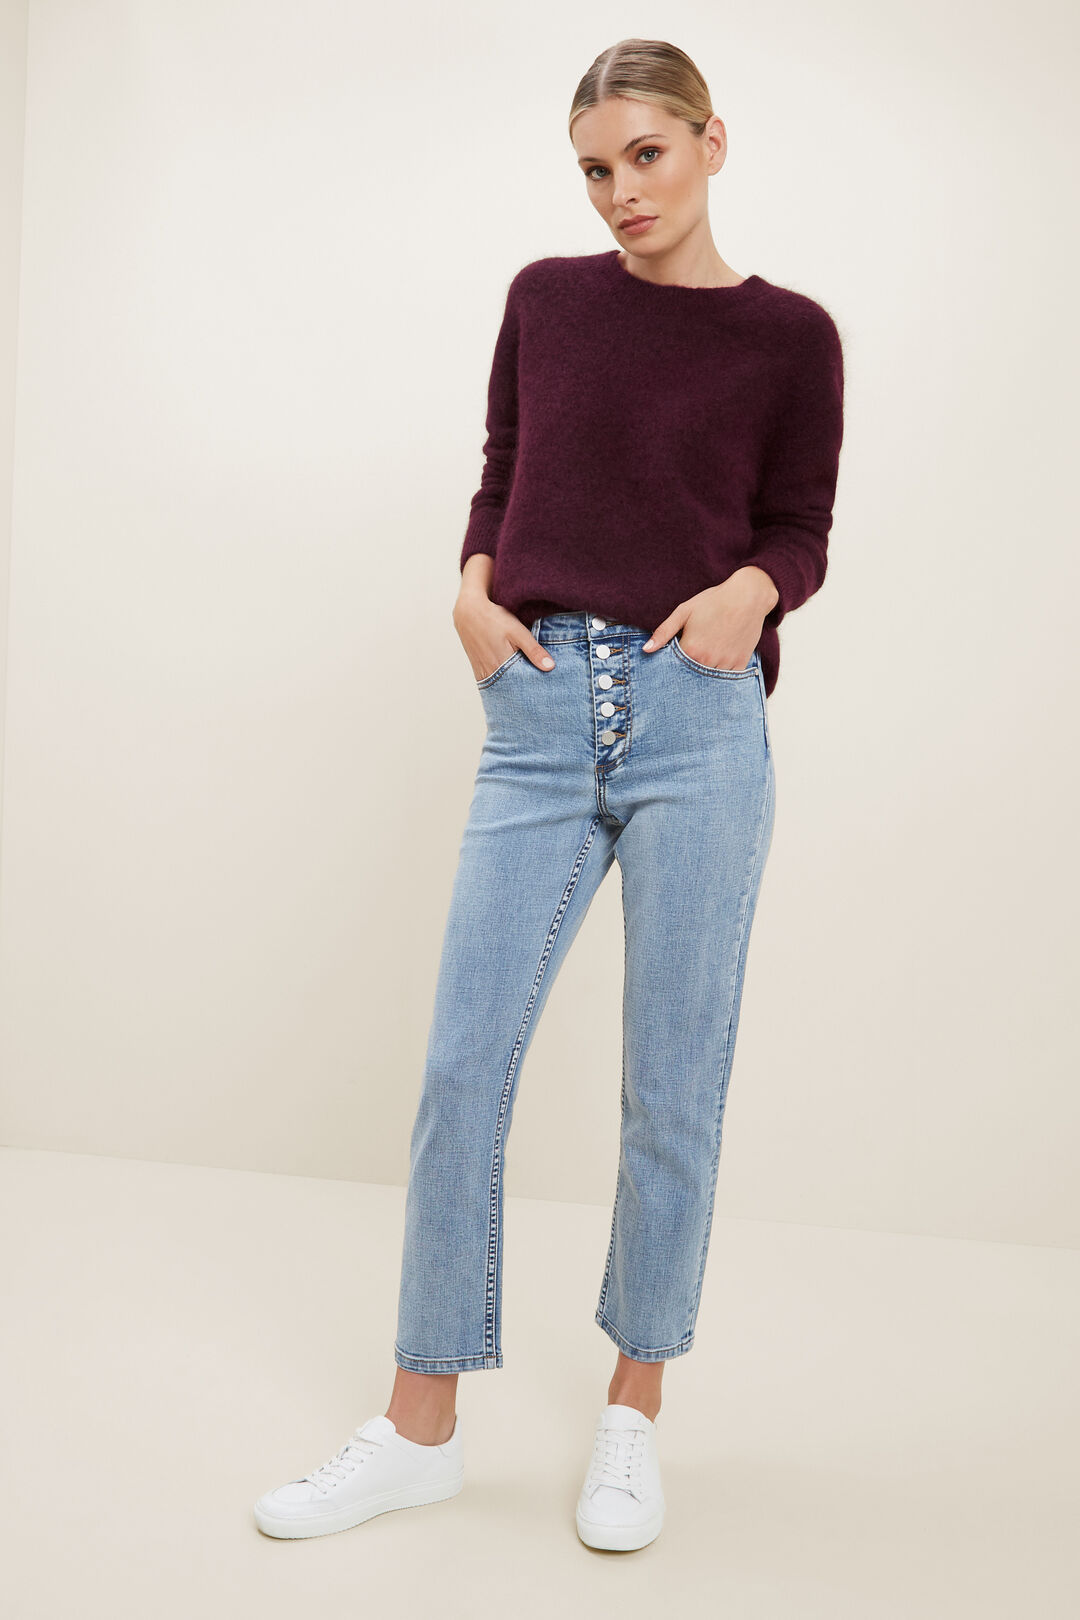 Mohair Crew Neck Sweater  Ruby Plum Marle  hi-res